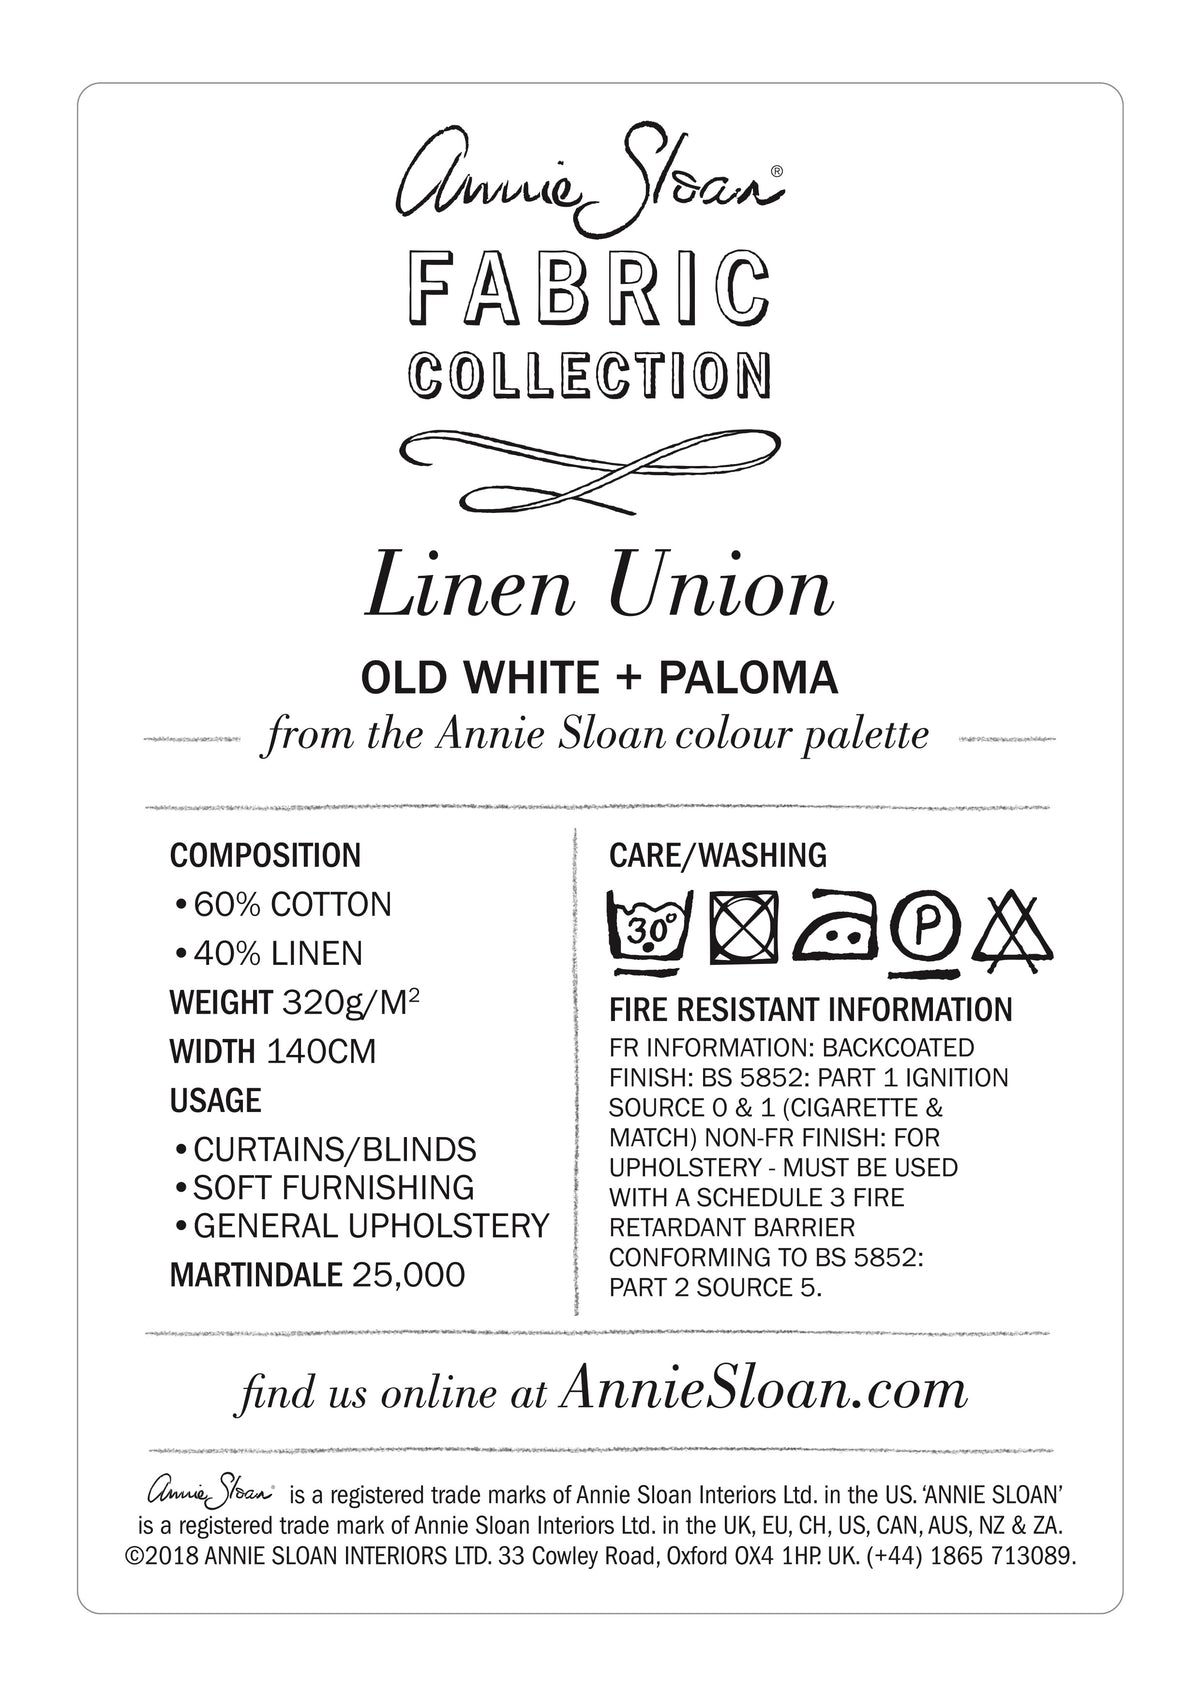 Linen Union in Old White + Paloma